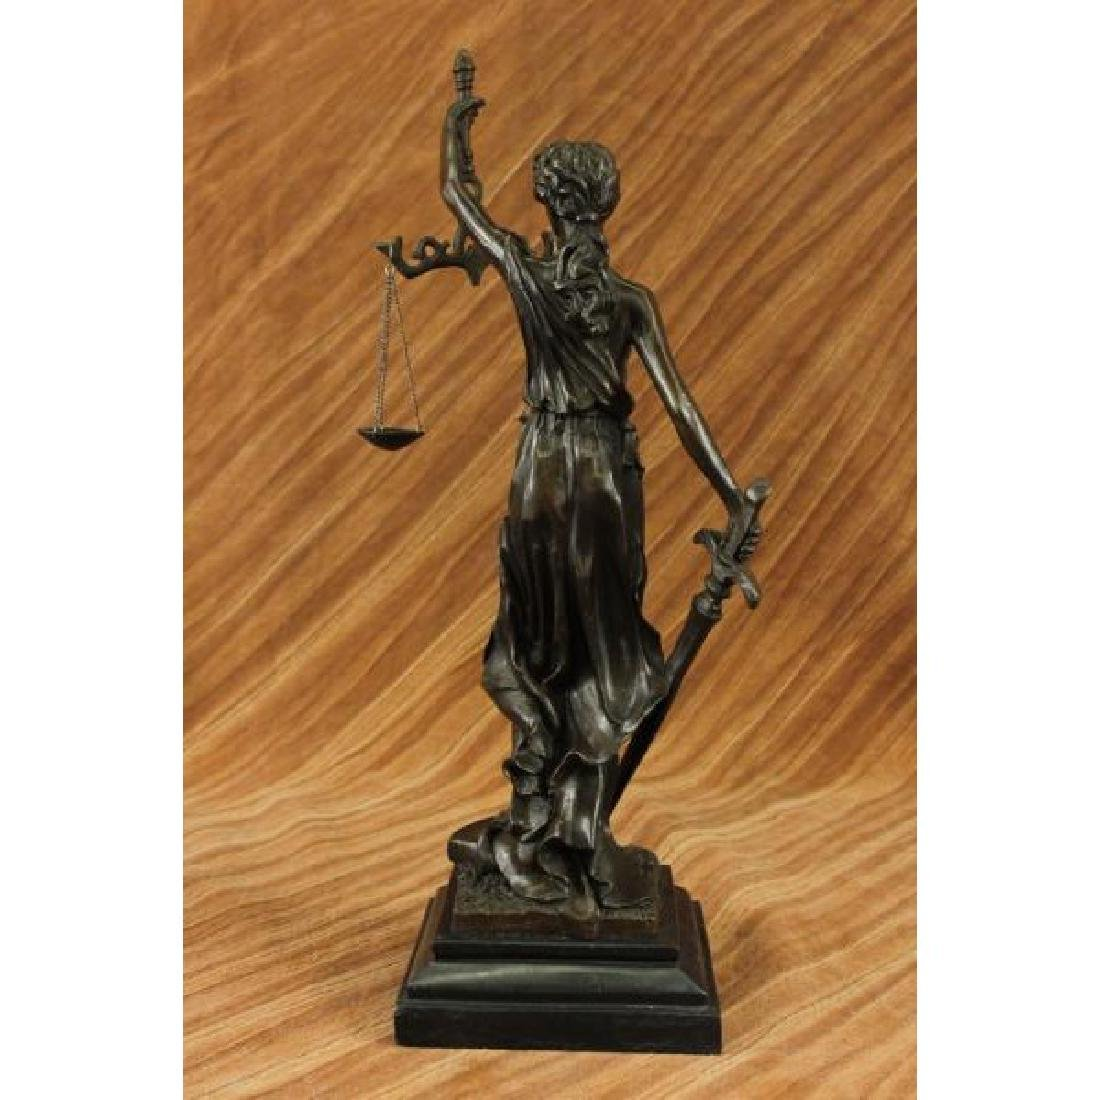 Blind Justice - Scale of Justice Bronze Sculpture - 3